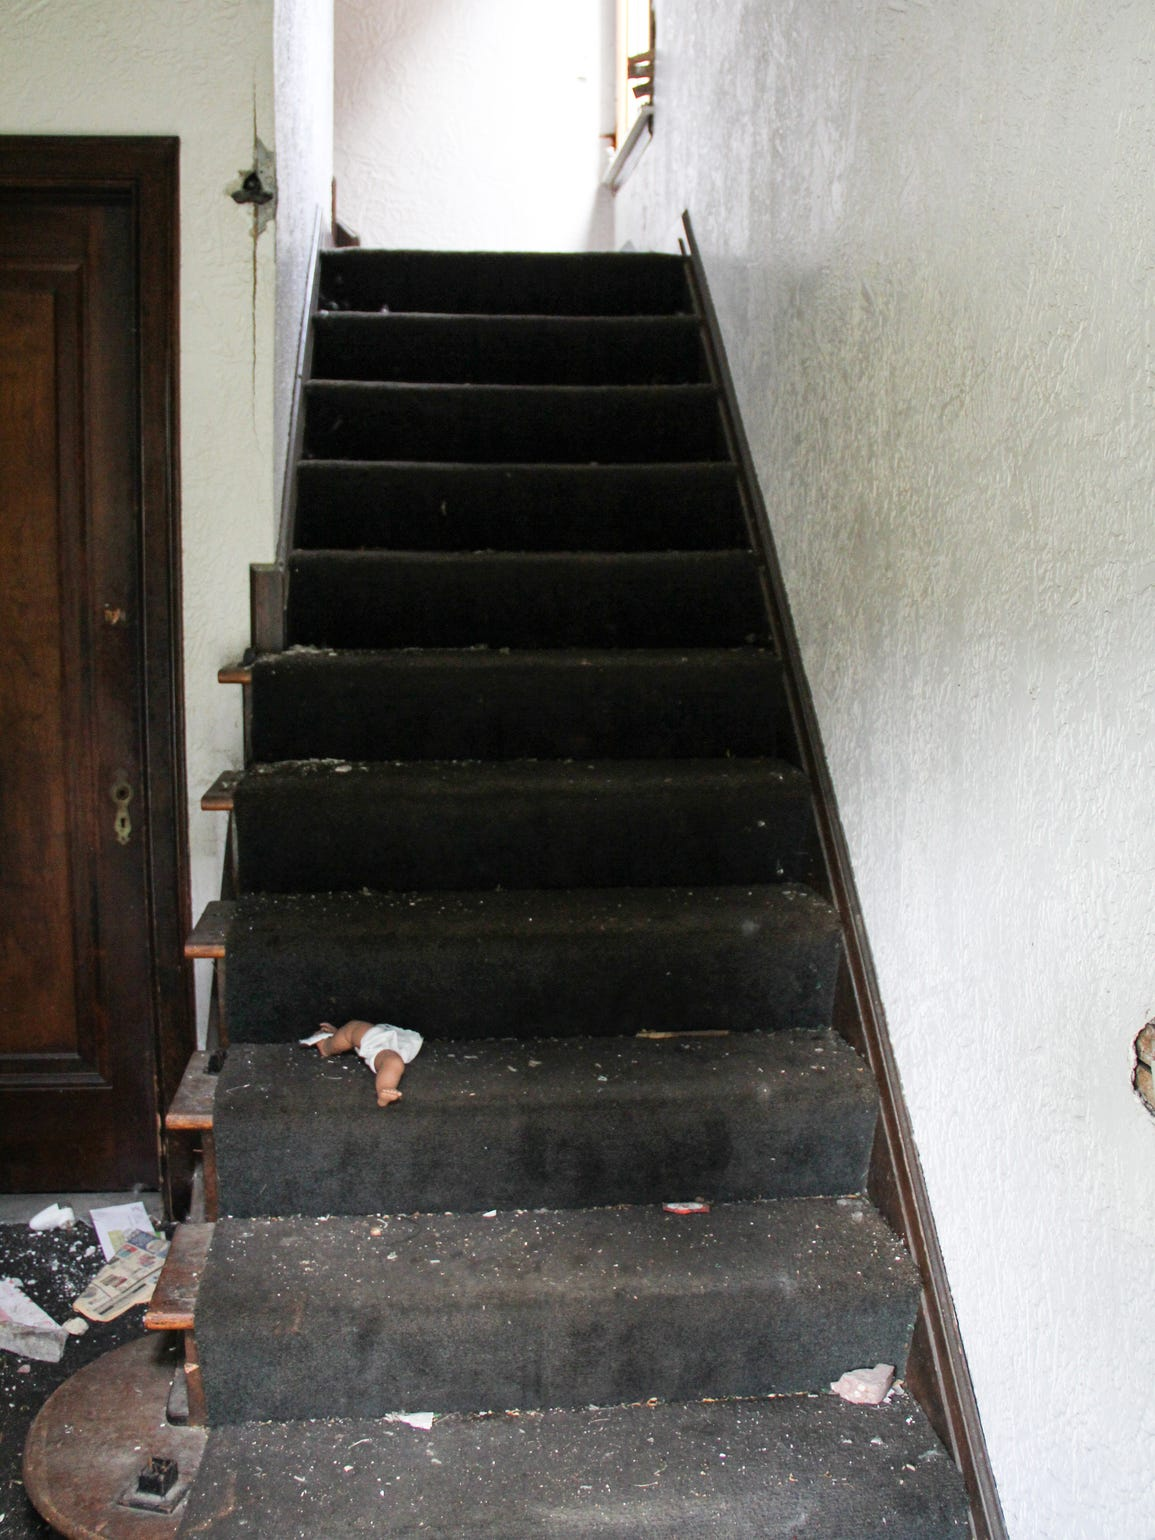 Carpeted stairs now lead to the second-floor apartment